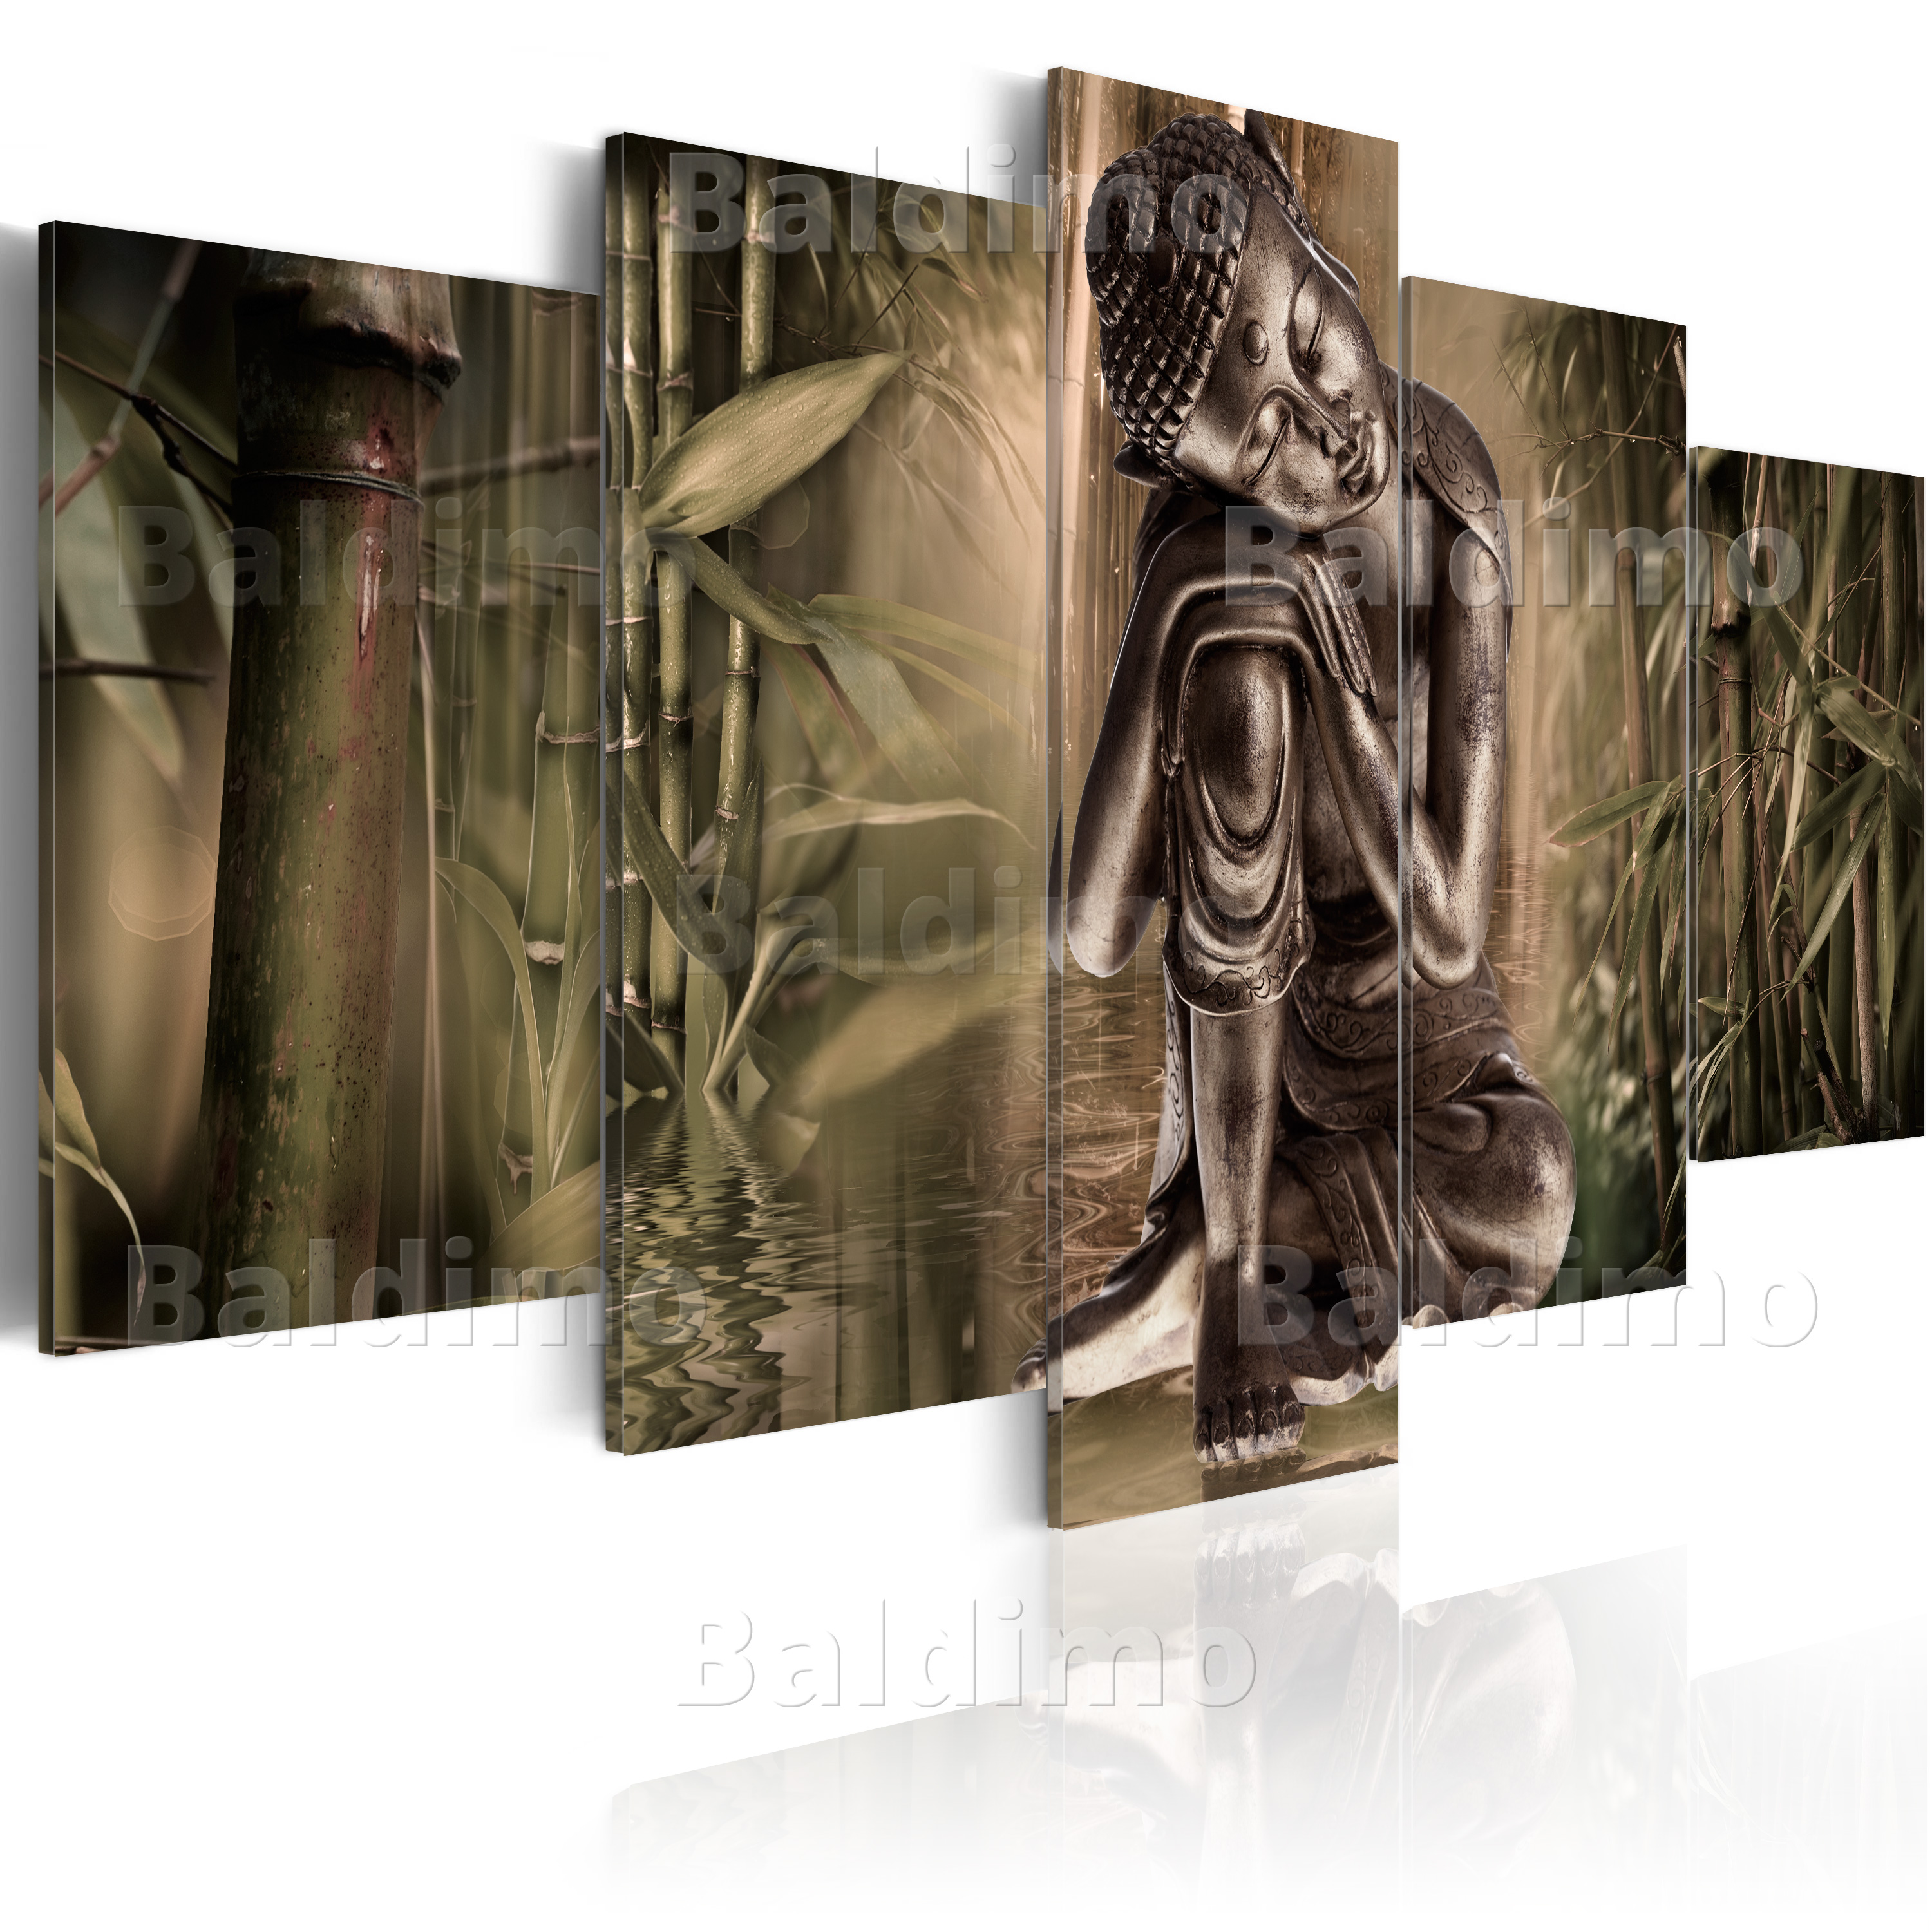 leinwand bilder xxl fertig aufgespannt bild buddha 020113 228 ebay. Black Bedroom Furniture Sets. Home Design Ideas